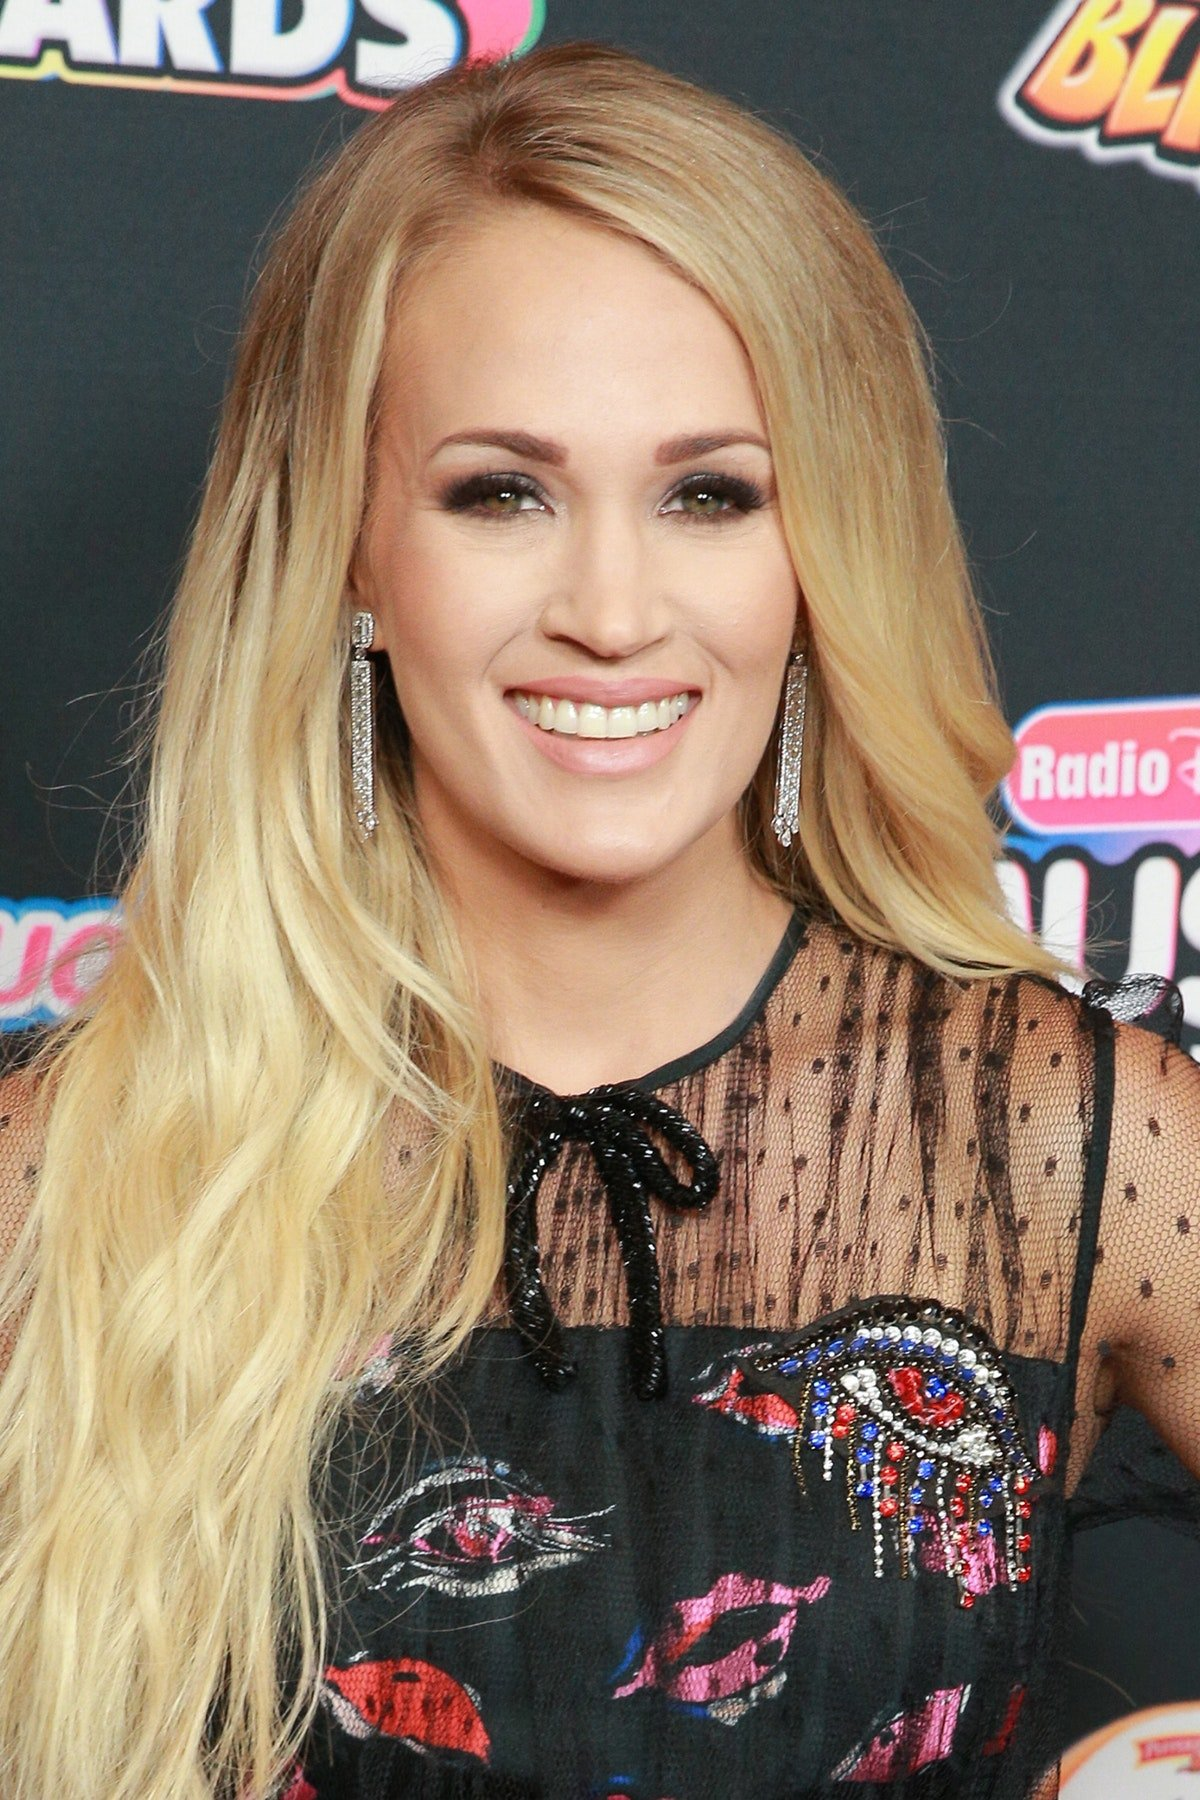 Carrie Underwood Just Announced Shes Pregnant With Her Second Child